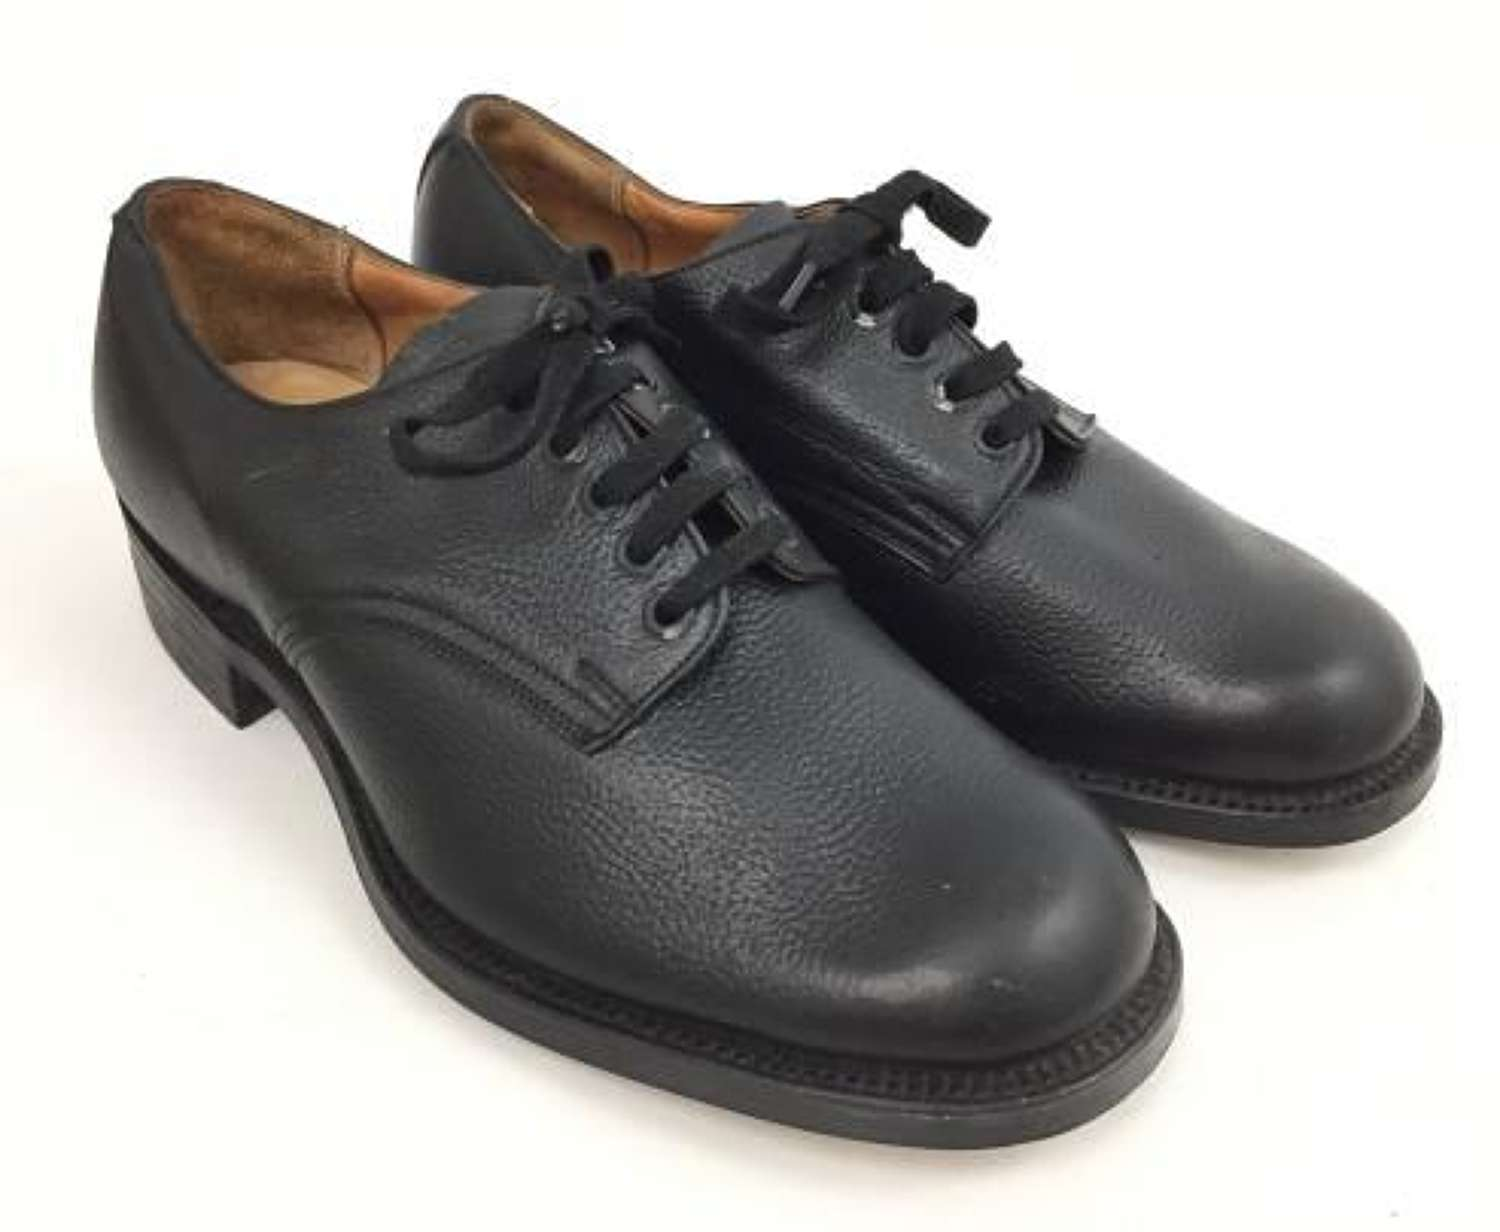 Original Women's Issue Shoes by CWS - WAAF WREN Civil Defence Etc.